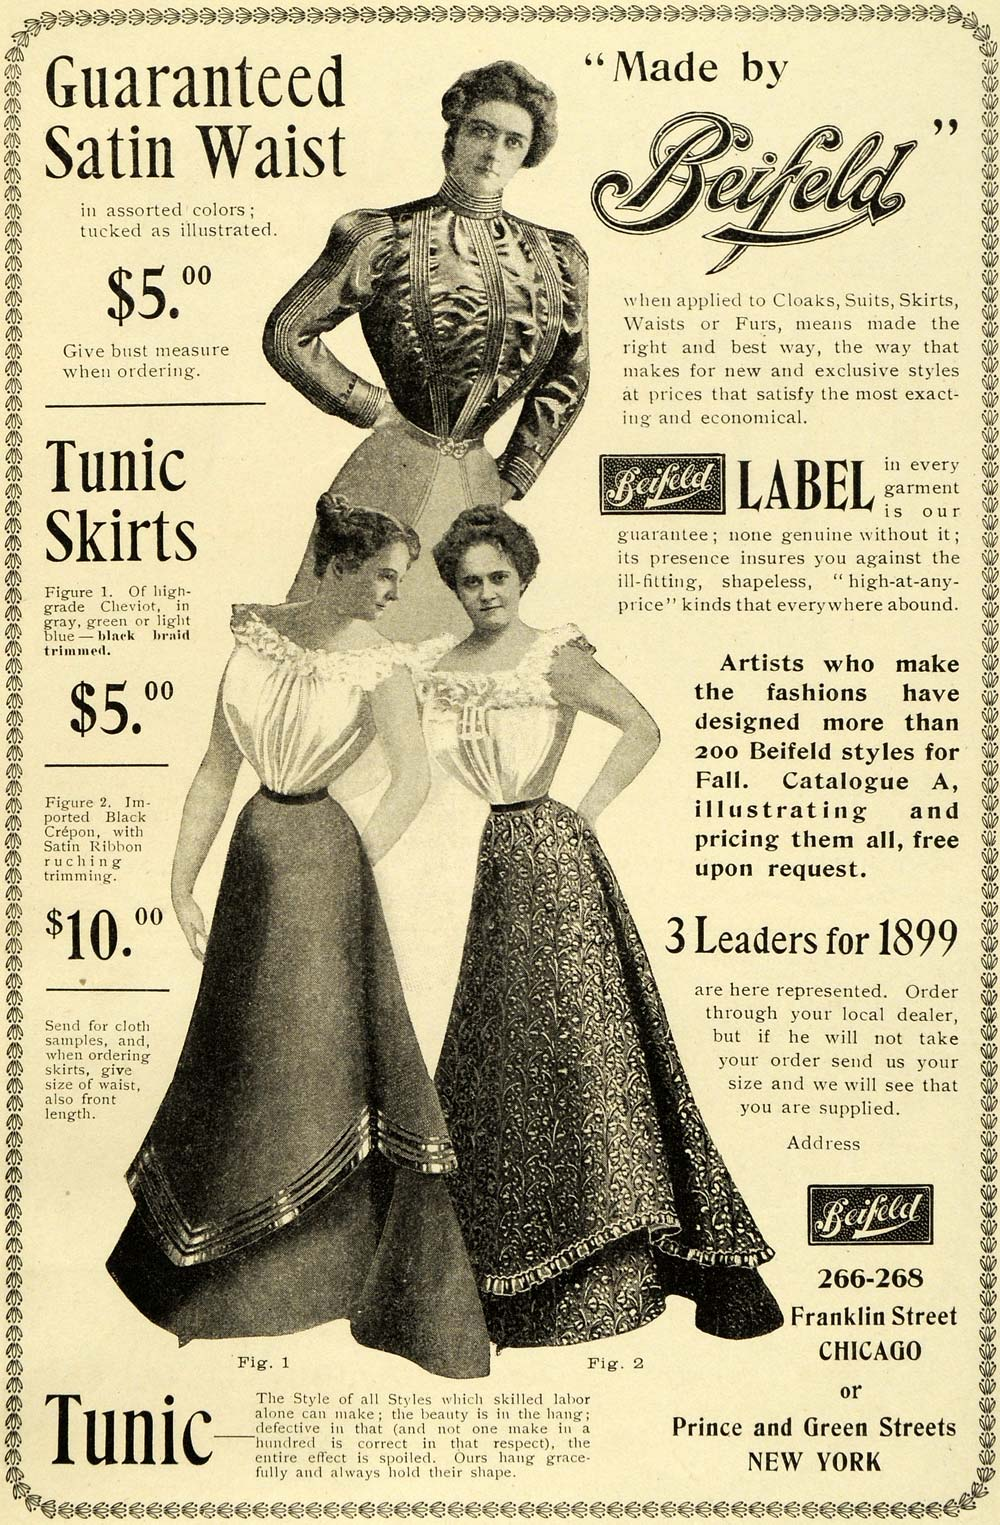 1899 Ad Beifeld Satin Waist Tunic Skirts Ladies Fashions Clothing Style LHJ6